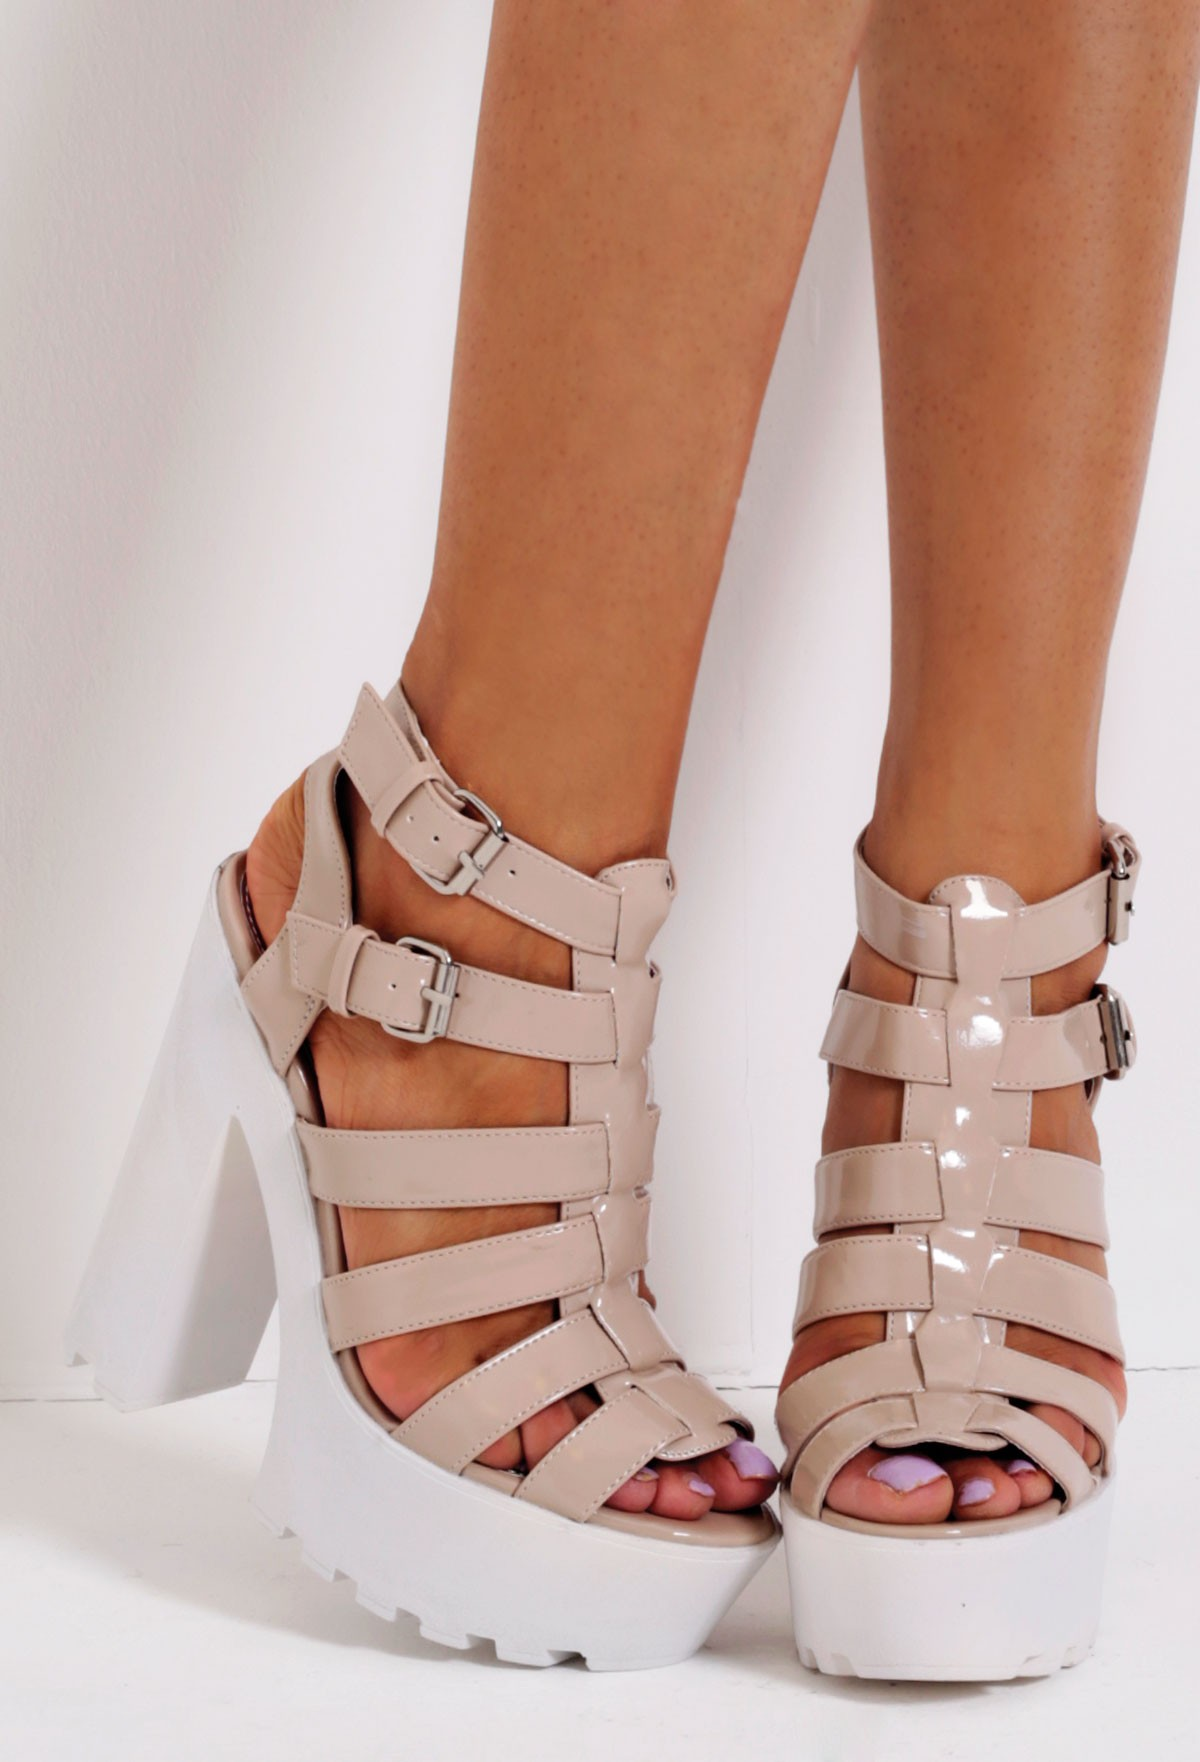 Toffee nude patent strappy buckle tractor sole platform shoes